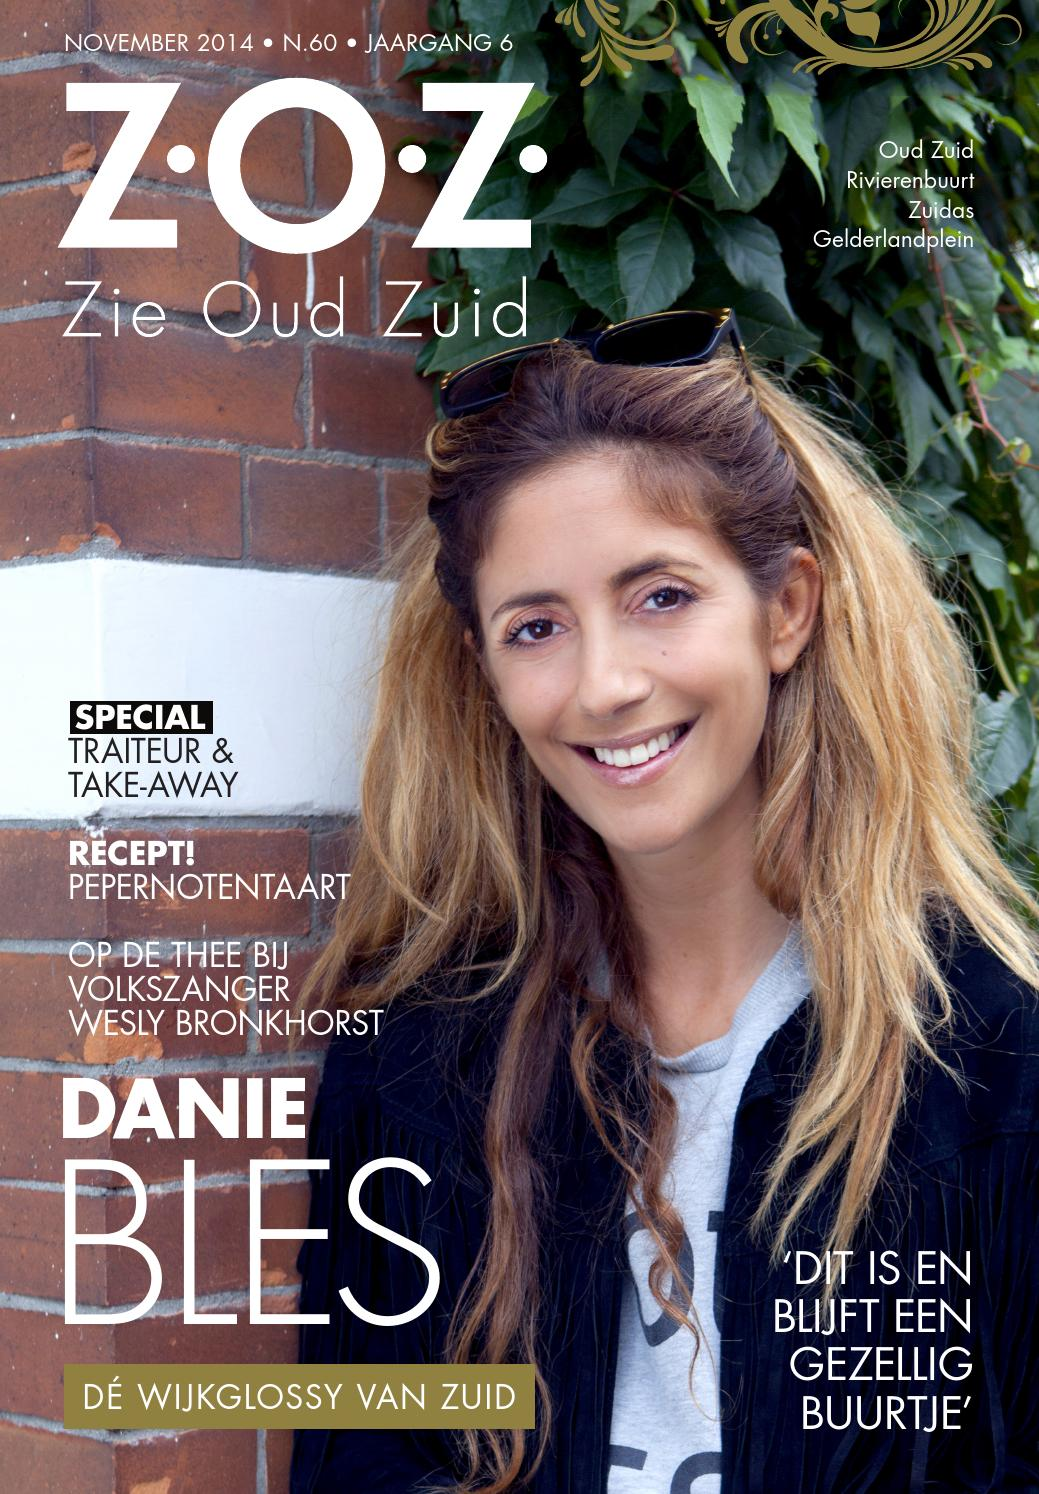 Z.o.z. editie 60, november 2014 by asega media   issuu